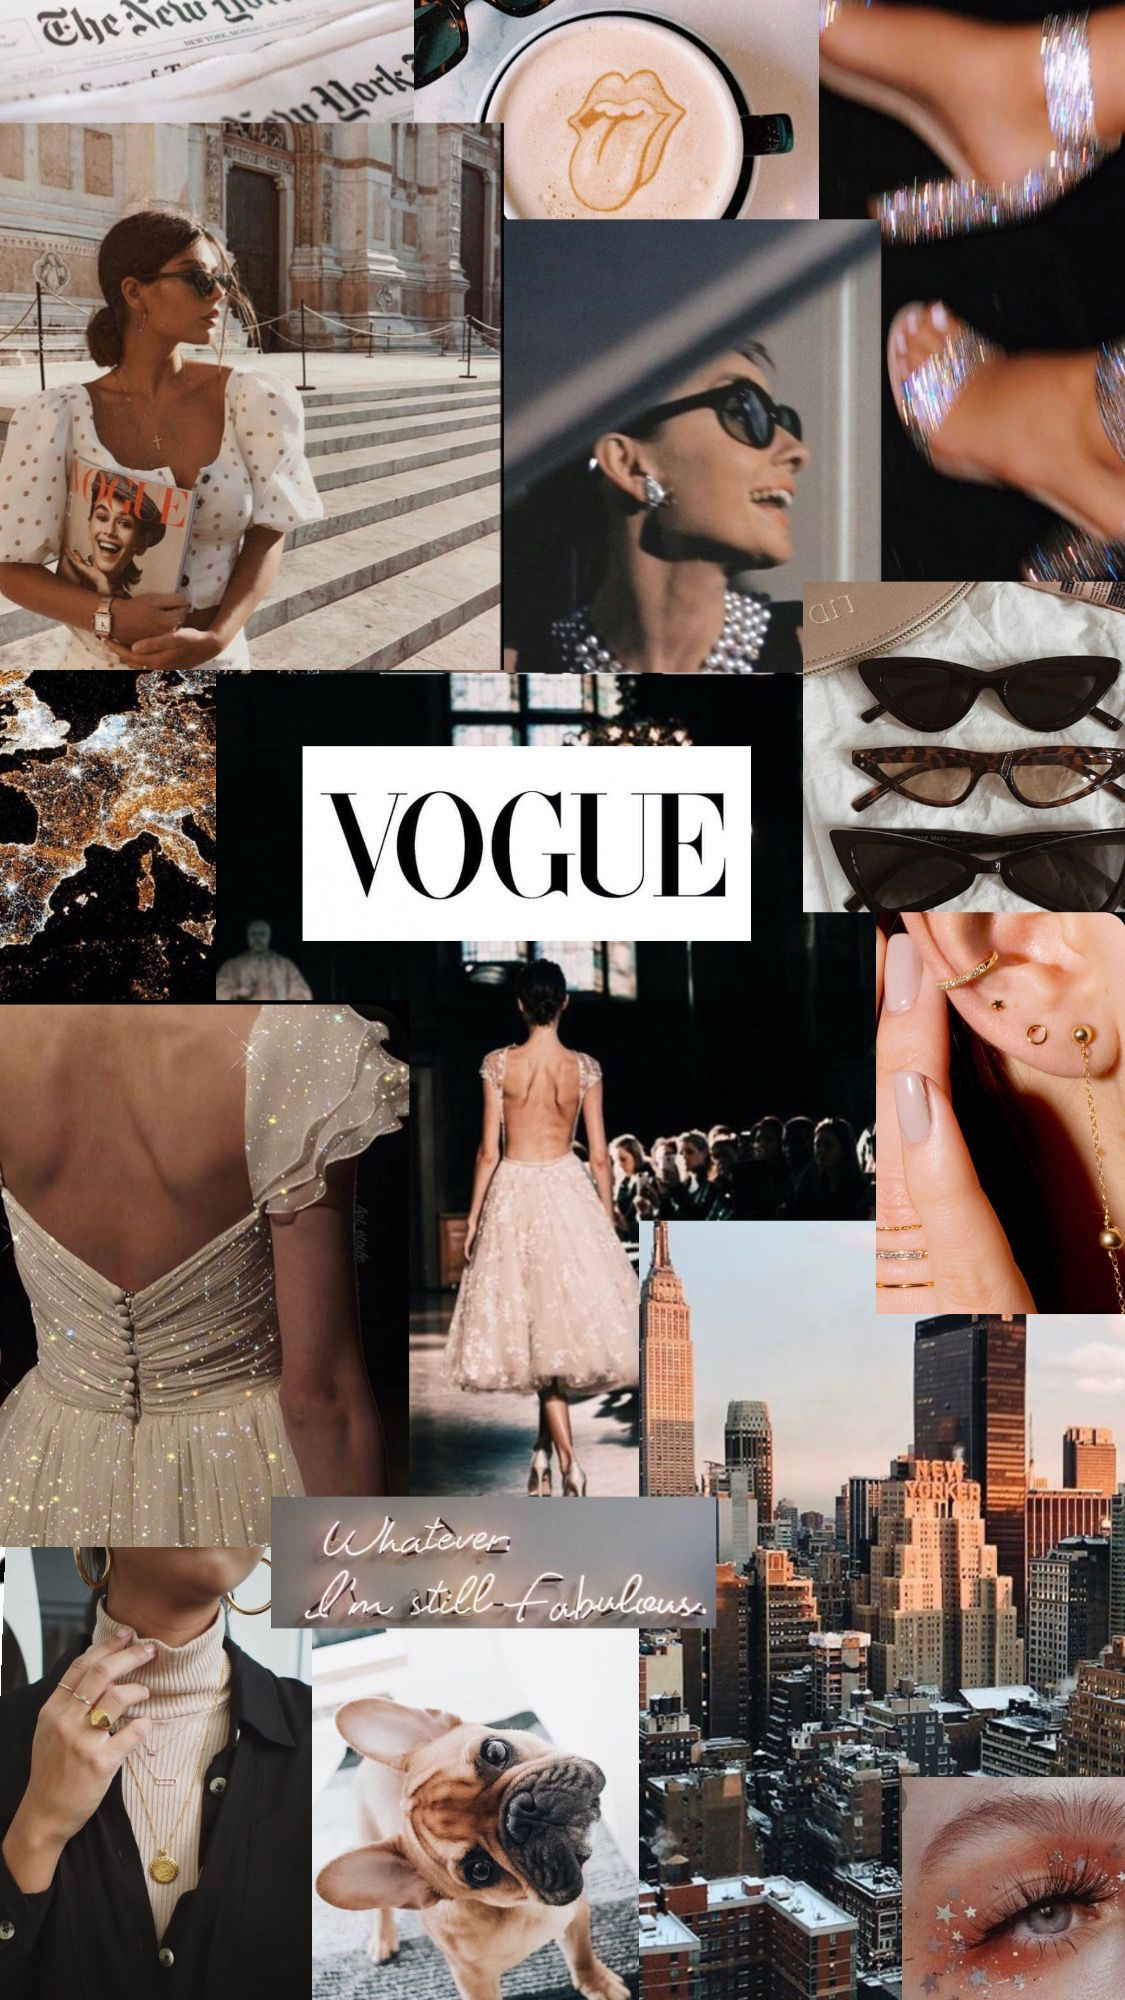 aesthetic collage wallpaper - Vogue Fashion World 2020-2021